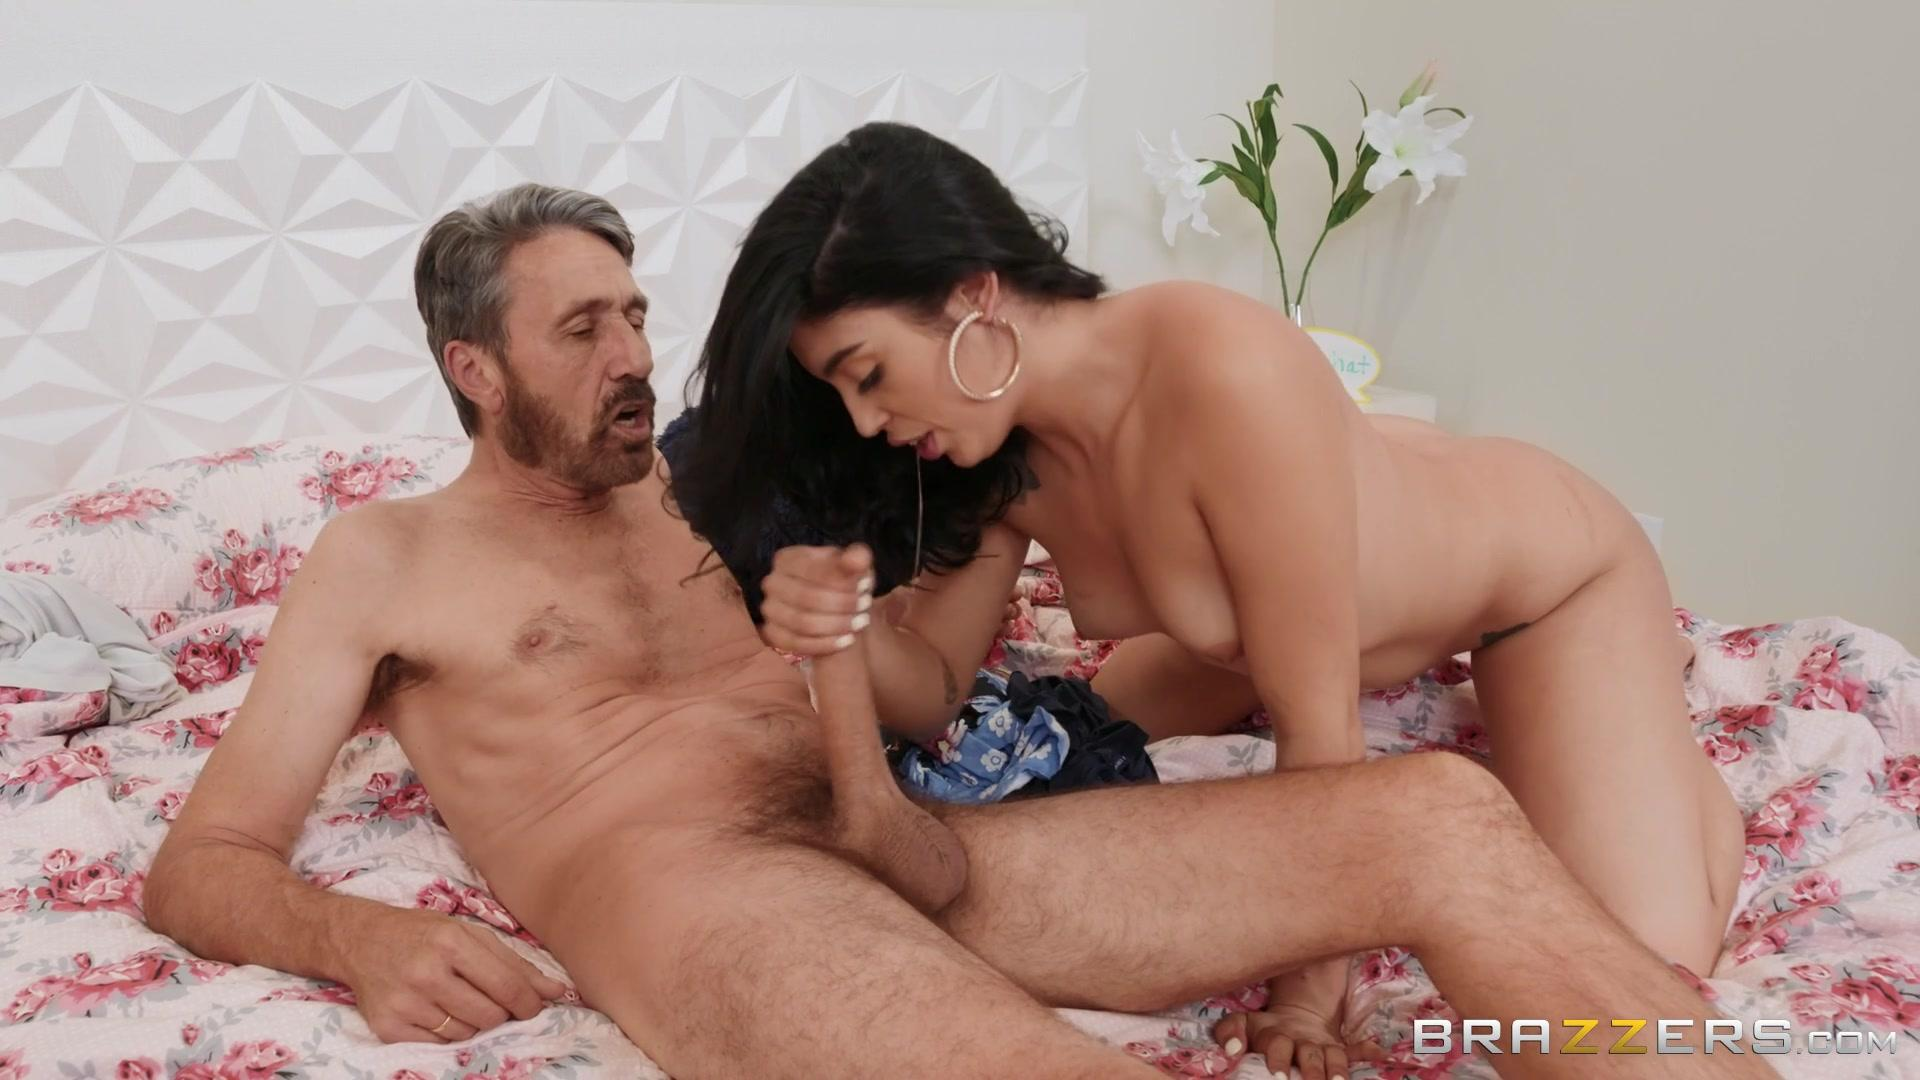 Brazzers Exxtra – Vanessa Sky Anal About Chores